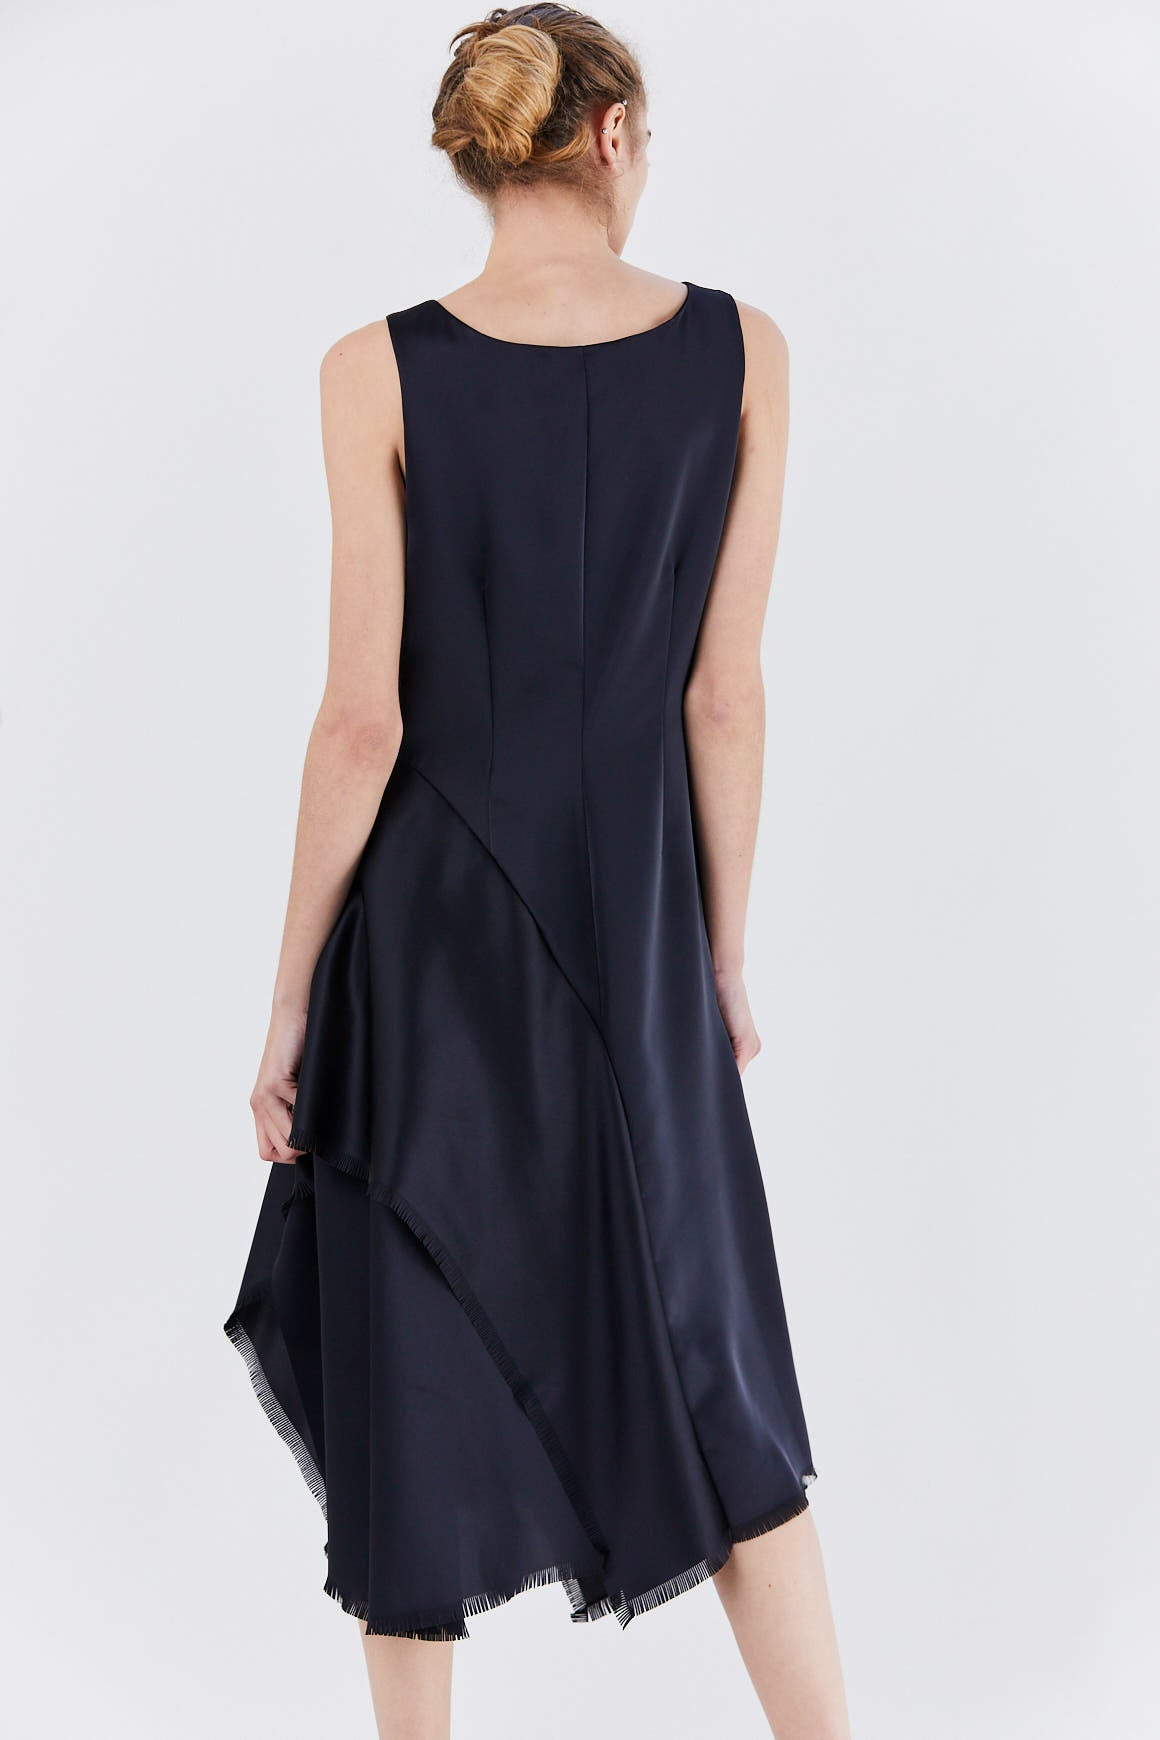 cédric charlier - sash dress, navy